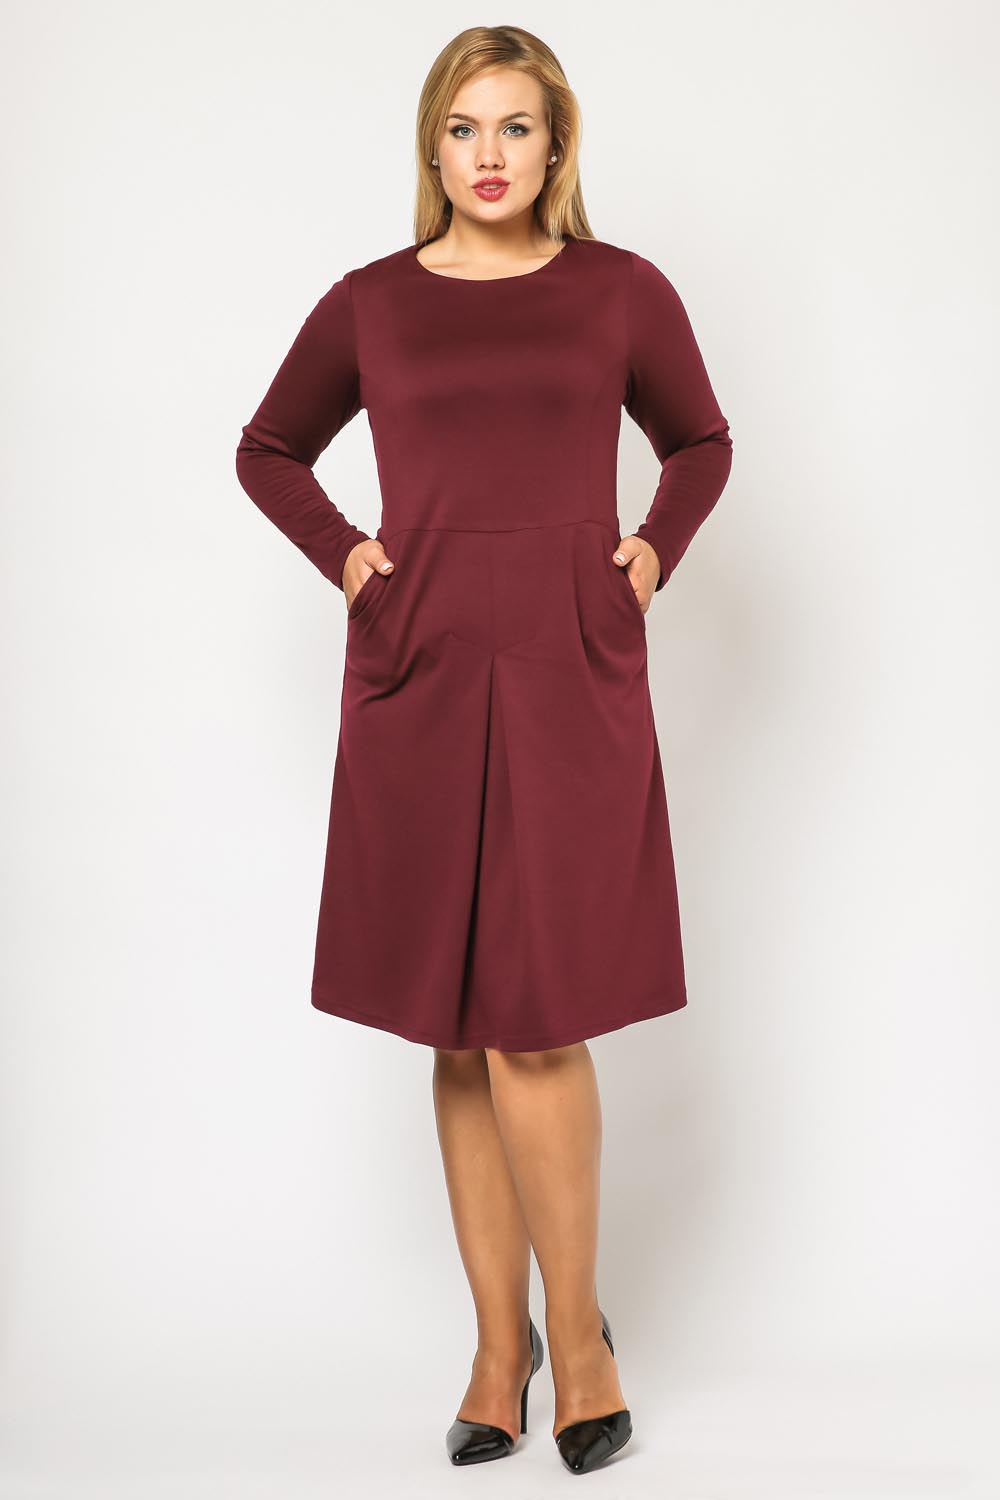 Maroon seam midi length plus size dress with long sleeves